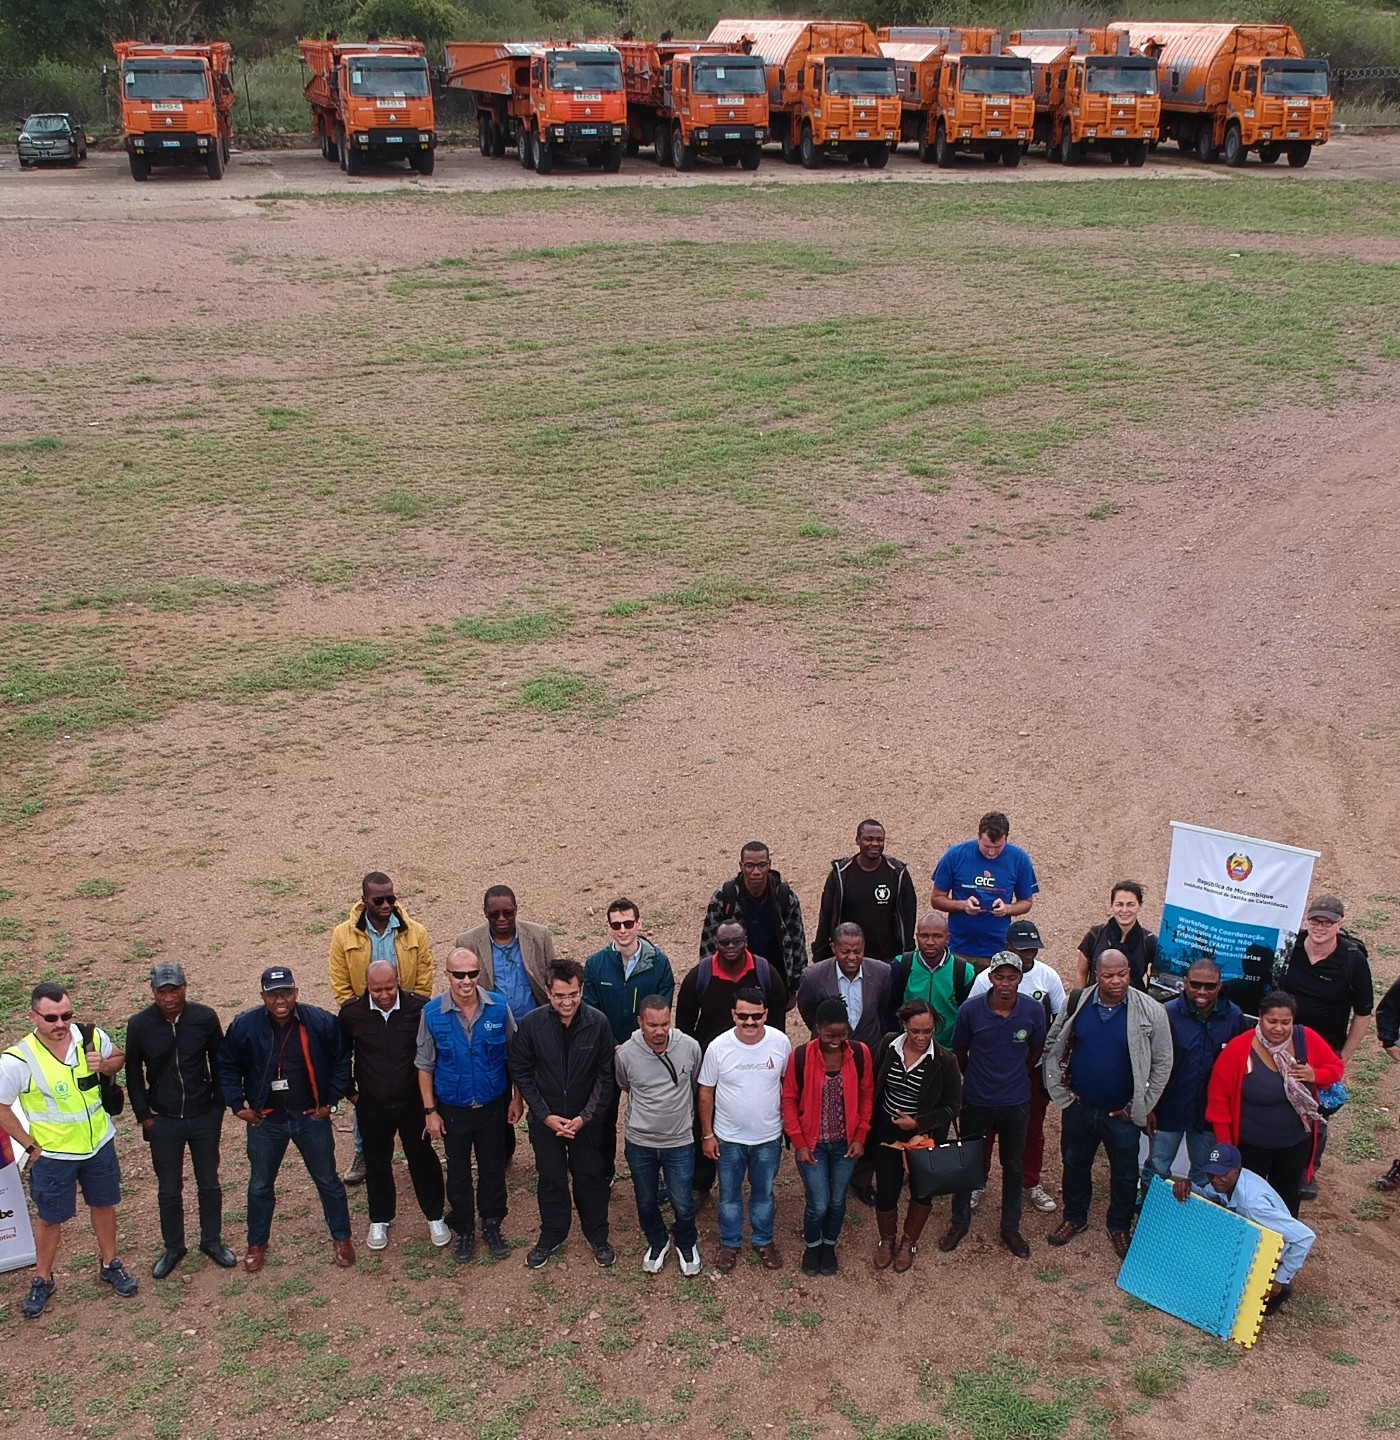 Using drones to deliver critical humanitarian aid - Frontier